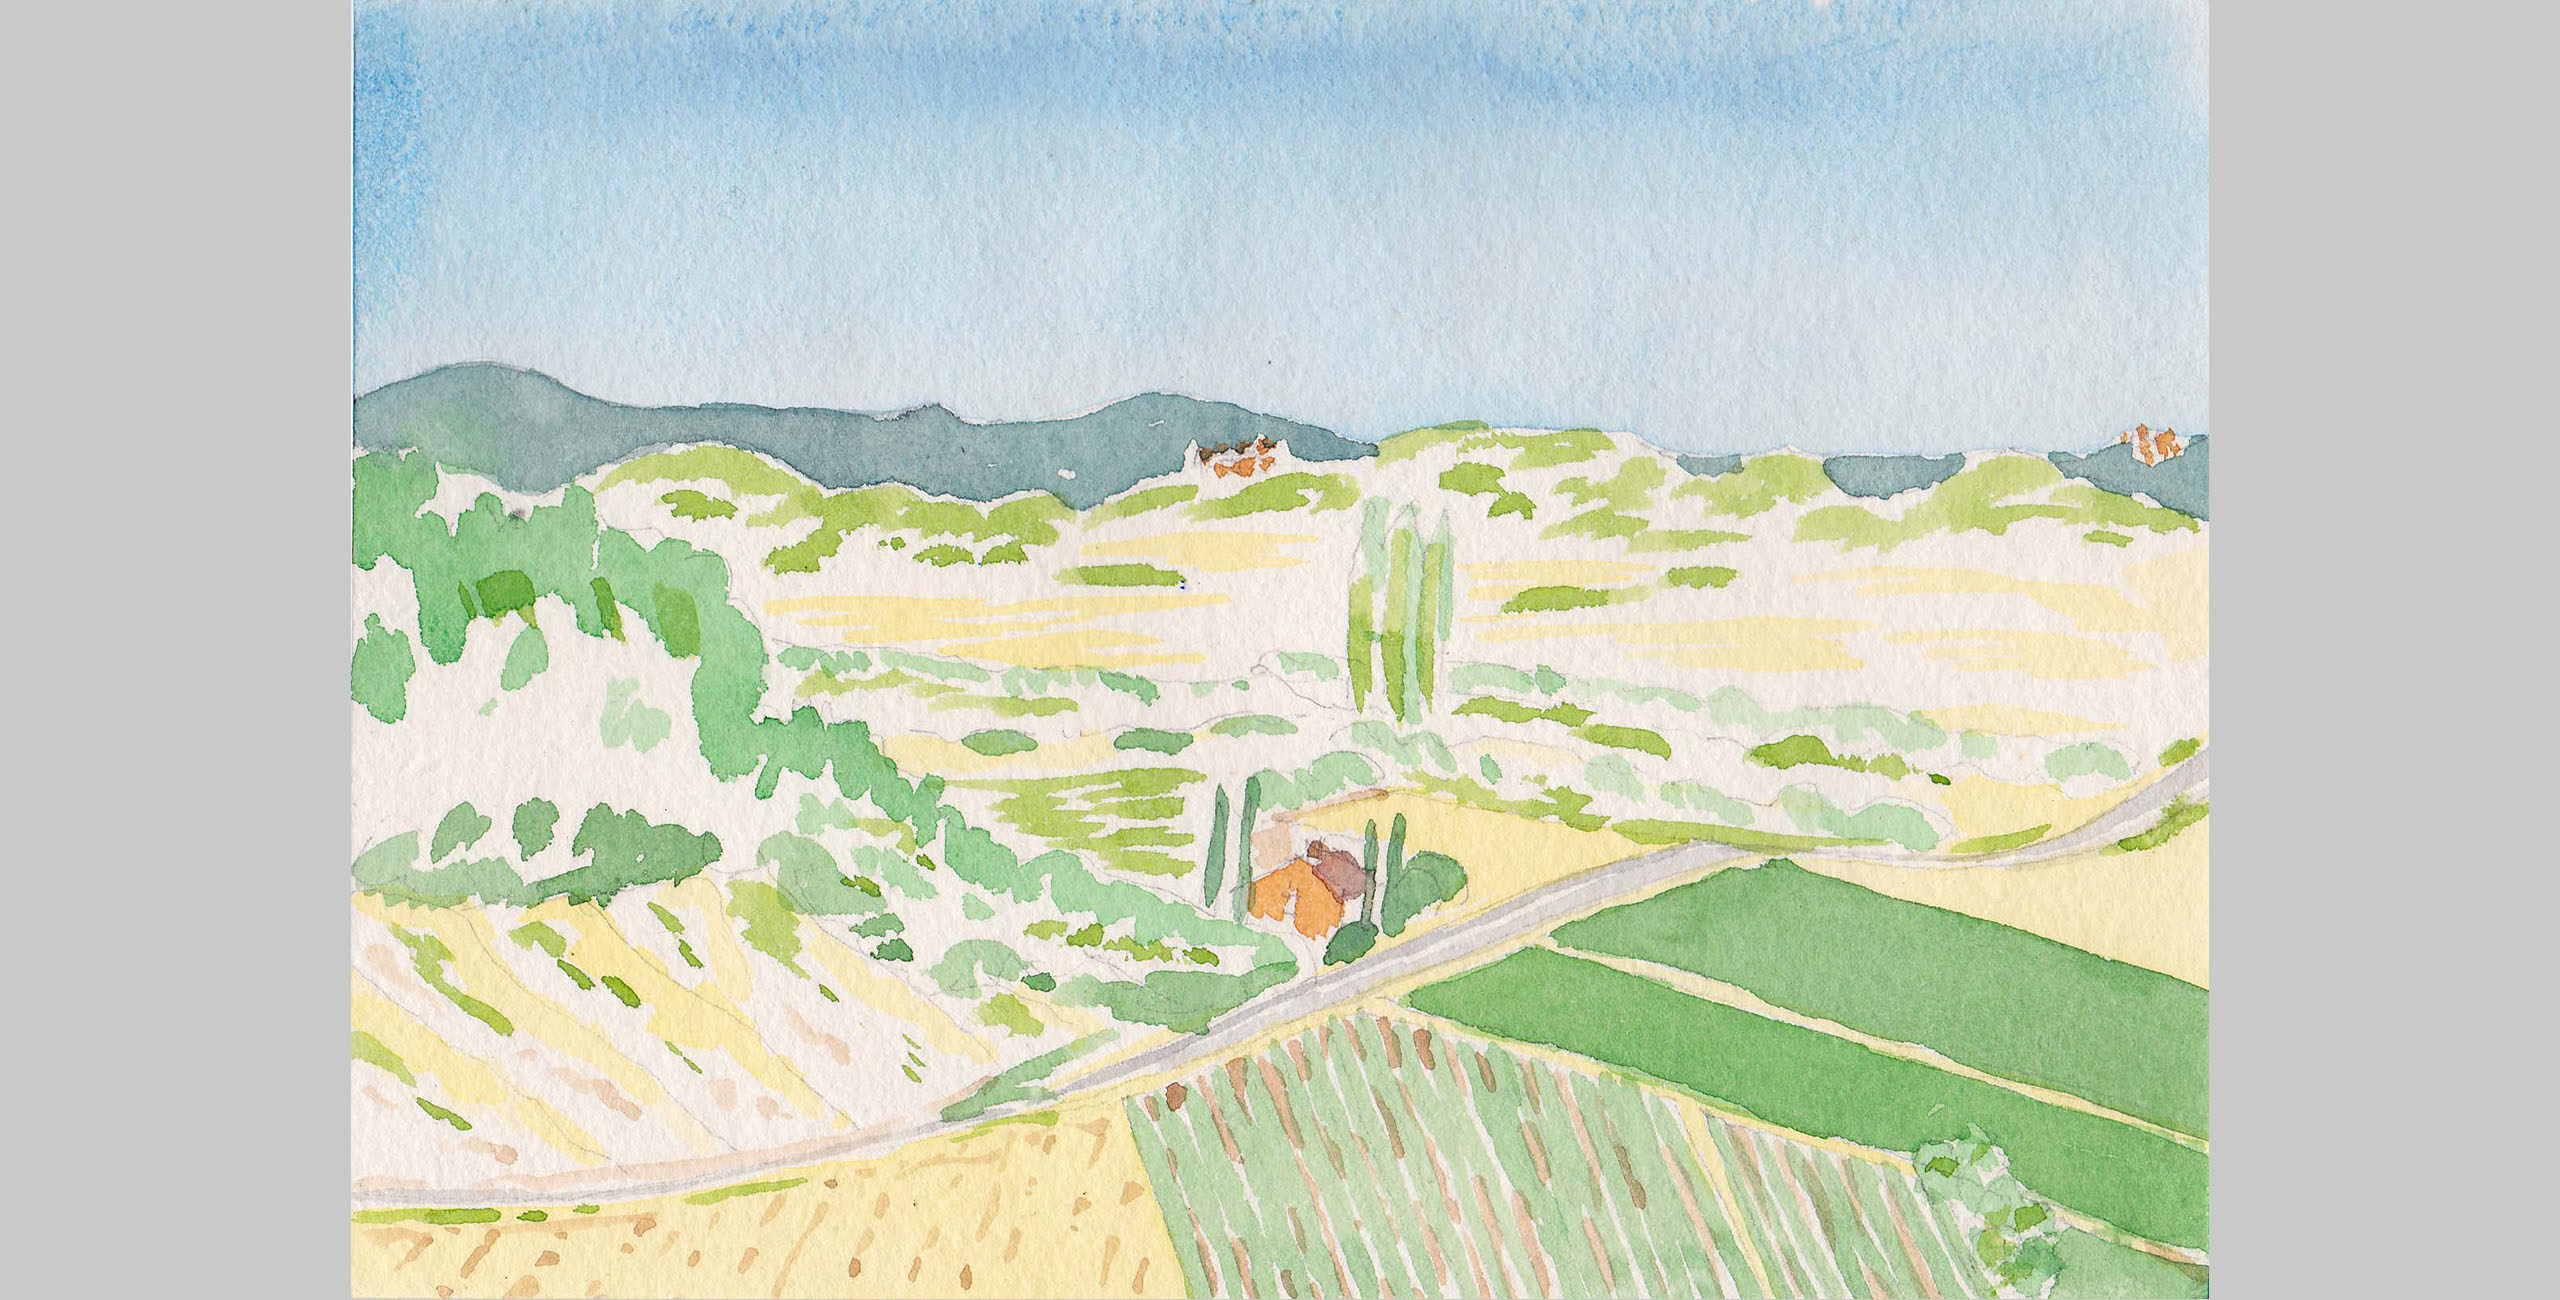 France 4, 2001, watercolor, 5 x 7 in.